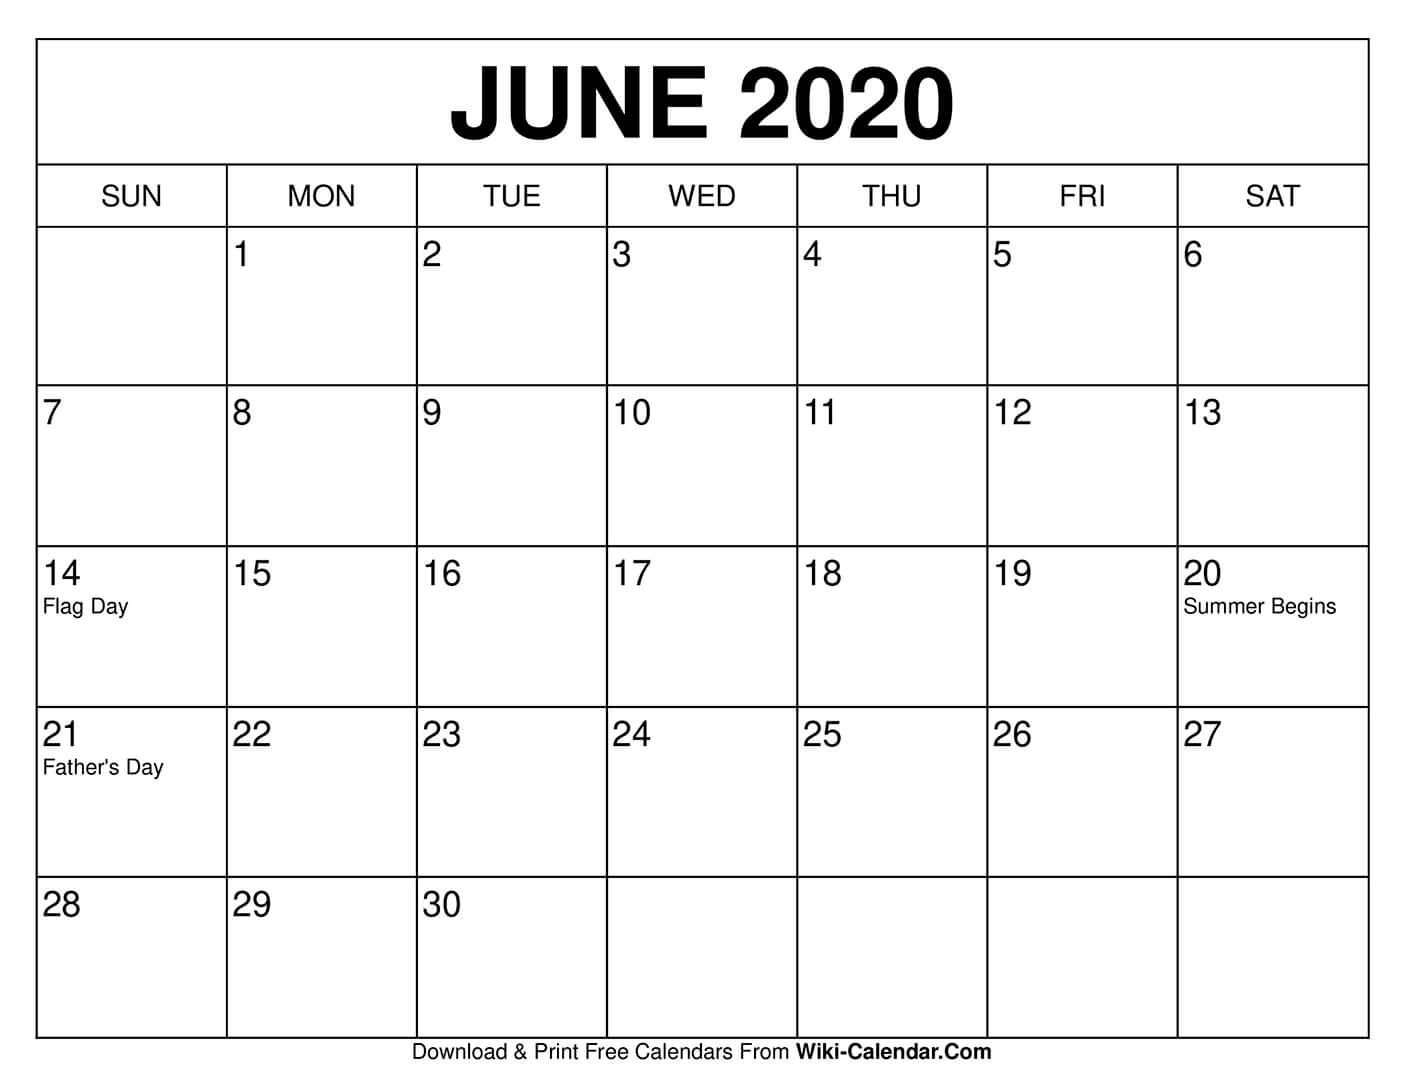 Get Why Do They Have Calendars From June To June